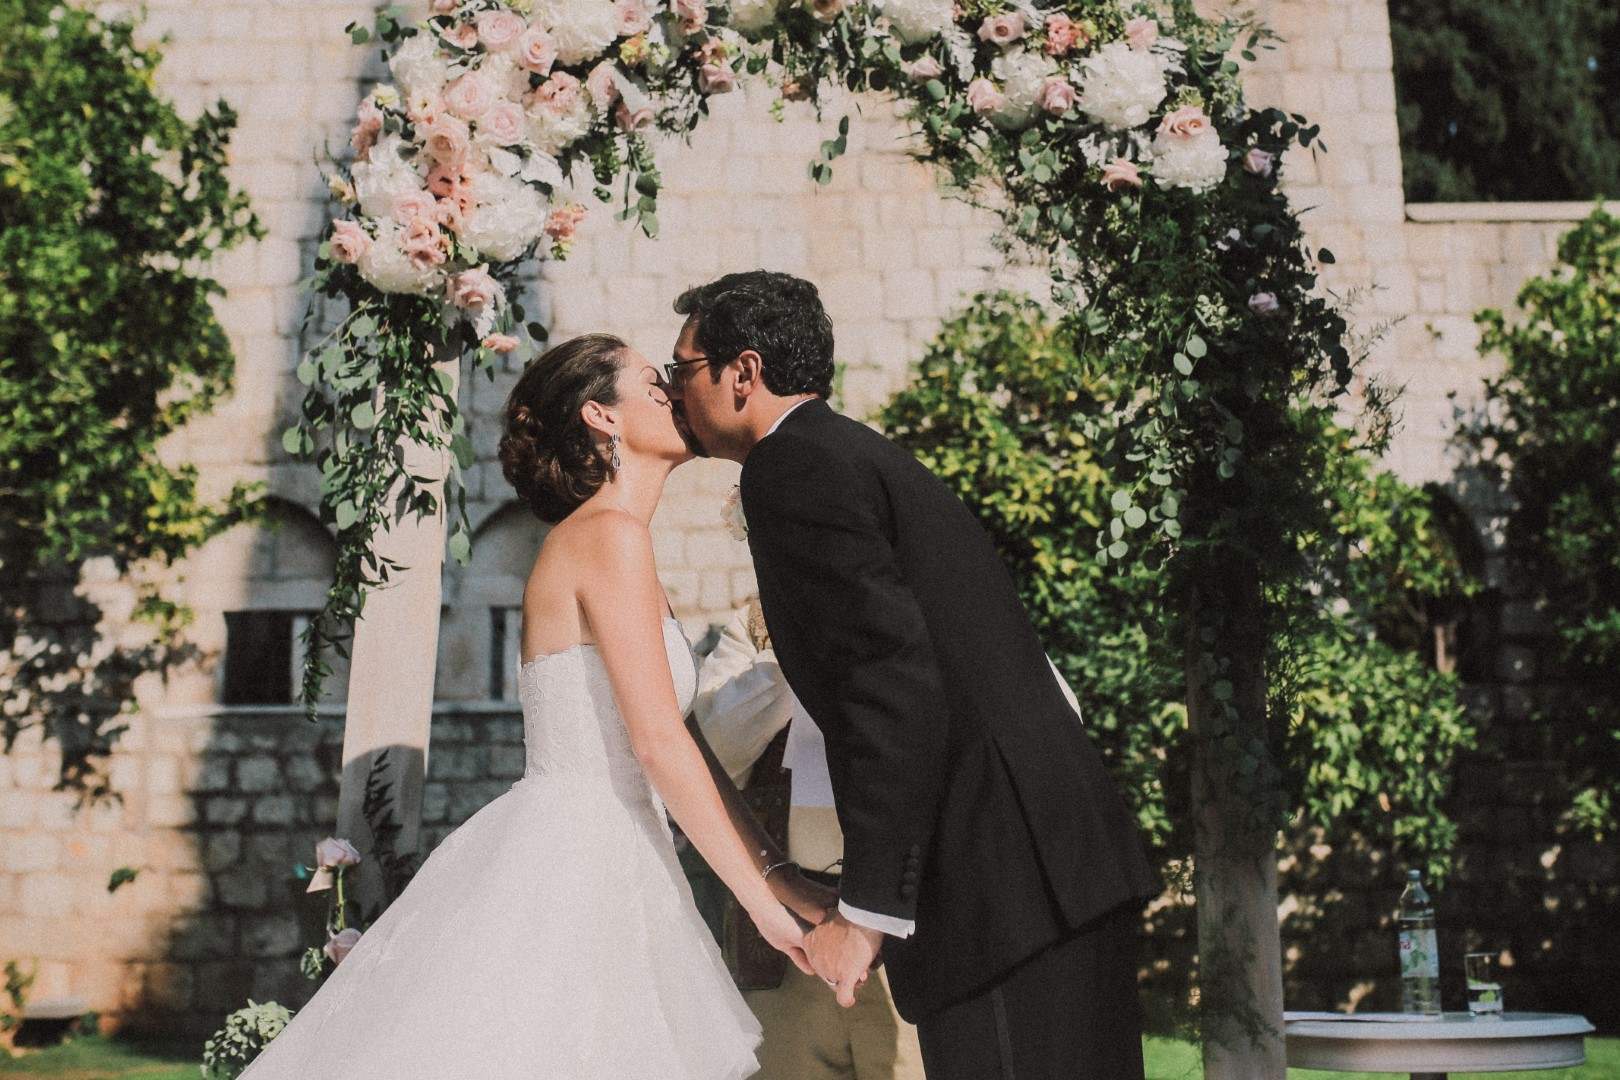 The happy couple just got married. They are beneath a white and pink greenery-flower arch. They are giving each other the first kiss as husband and wife.